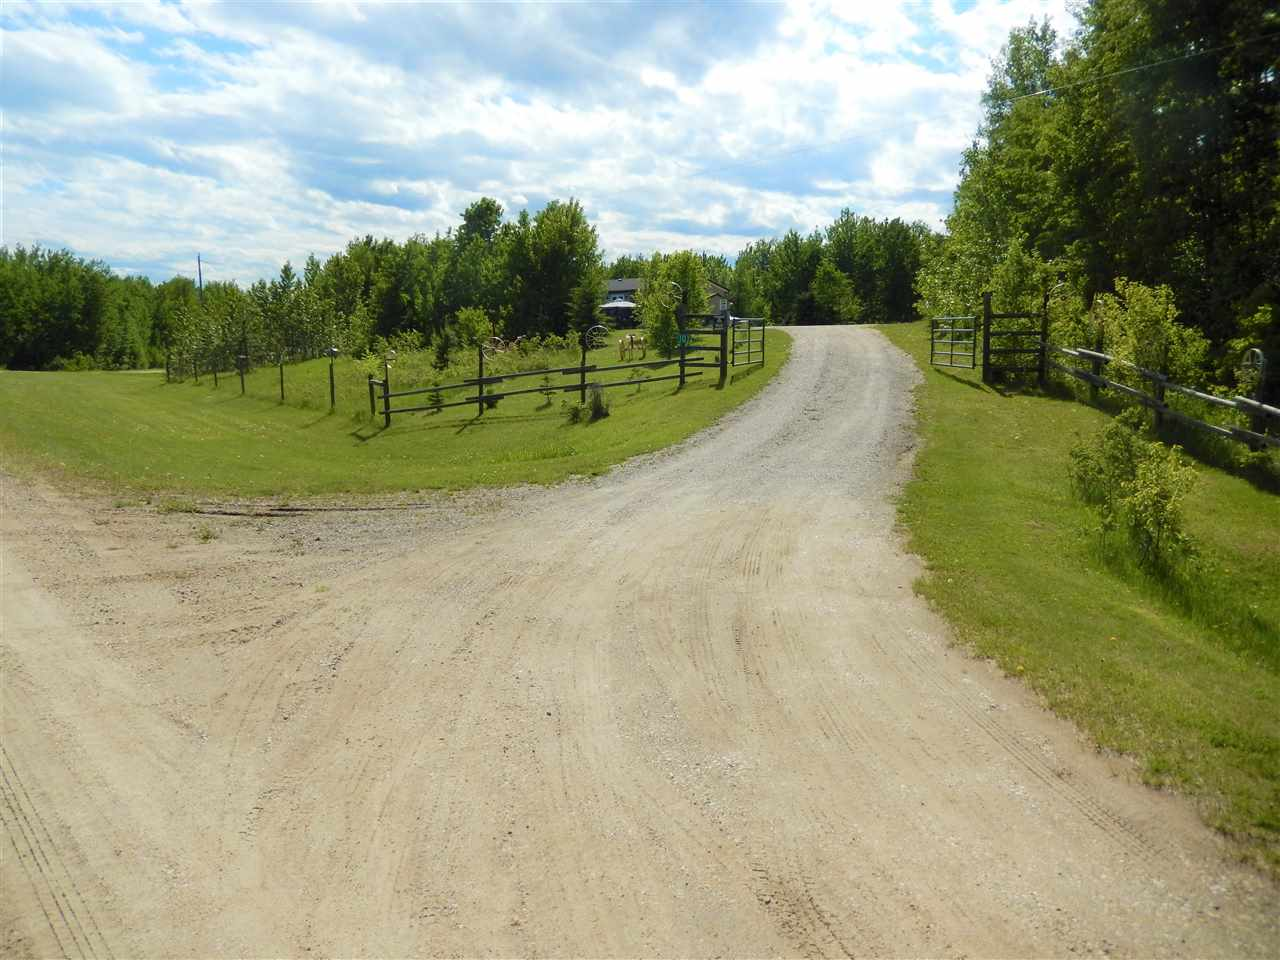 DREAM ACREAGE with EVERYTHING YOU NEED! 30 ACRES of FENCED, ROLLING TREED HILLS+TRAILS backing onto & facing CROWNLAND.  Beautiful 2007, 20 Wide Modular with LARGE FINISHED GARAGE/METAL ROOF, 220 power (24x30 ft deep w 10 ft ceilings) 2 OVERHEAD DOORS (one is 8x10 ft wide & one is 8x8 ft) + MAN DOOR. The home sits on CEMENT PILINGS & is TIED DOWN. Gorgeous layout with LARGE WORKING KITCHEN equipped with PANTRY, ISLAND, EATING BAR, newer STAINL appliances all opening up to big DINING AREA with BAY WINDOW next to the living rm. The MASTER is HUGE and has WALK-IN CLOSET & nice ENSUITE. Main door has plenty of rm for BOOTS/COATS & the LAUNDRY RM/STORAGE is right there. The CATHEDR CEILINGS run thru whole house & there is HIGH END LAMINATE thru-out except kitch, laund, foyer & bathrs. WORKSHOP is 20X10 with power. Also another 20x10 shed + 2 lean-to sheds & tent shed. GARDEN, 2 DECKS (one on E, one on W side), ROCK PATHS, CLOTHESLINE, GATED GRAVEL DRIVEWAY & GAZEBO finish it off!! Very well cared for!